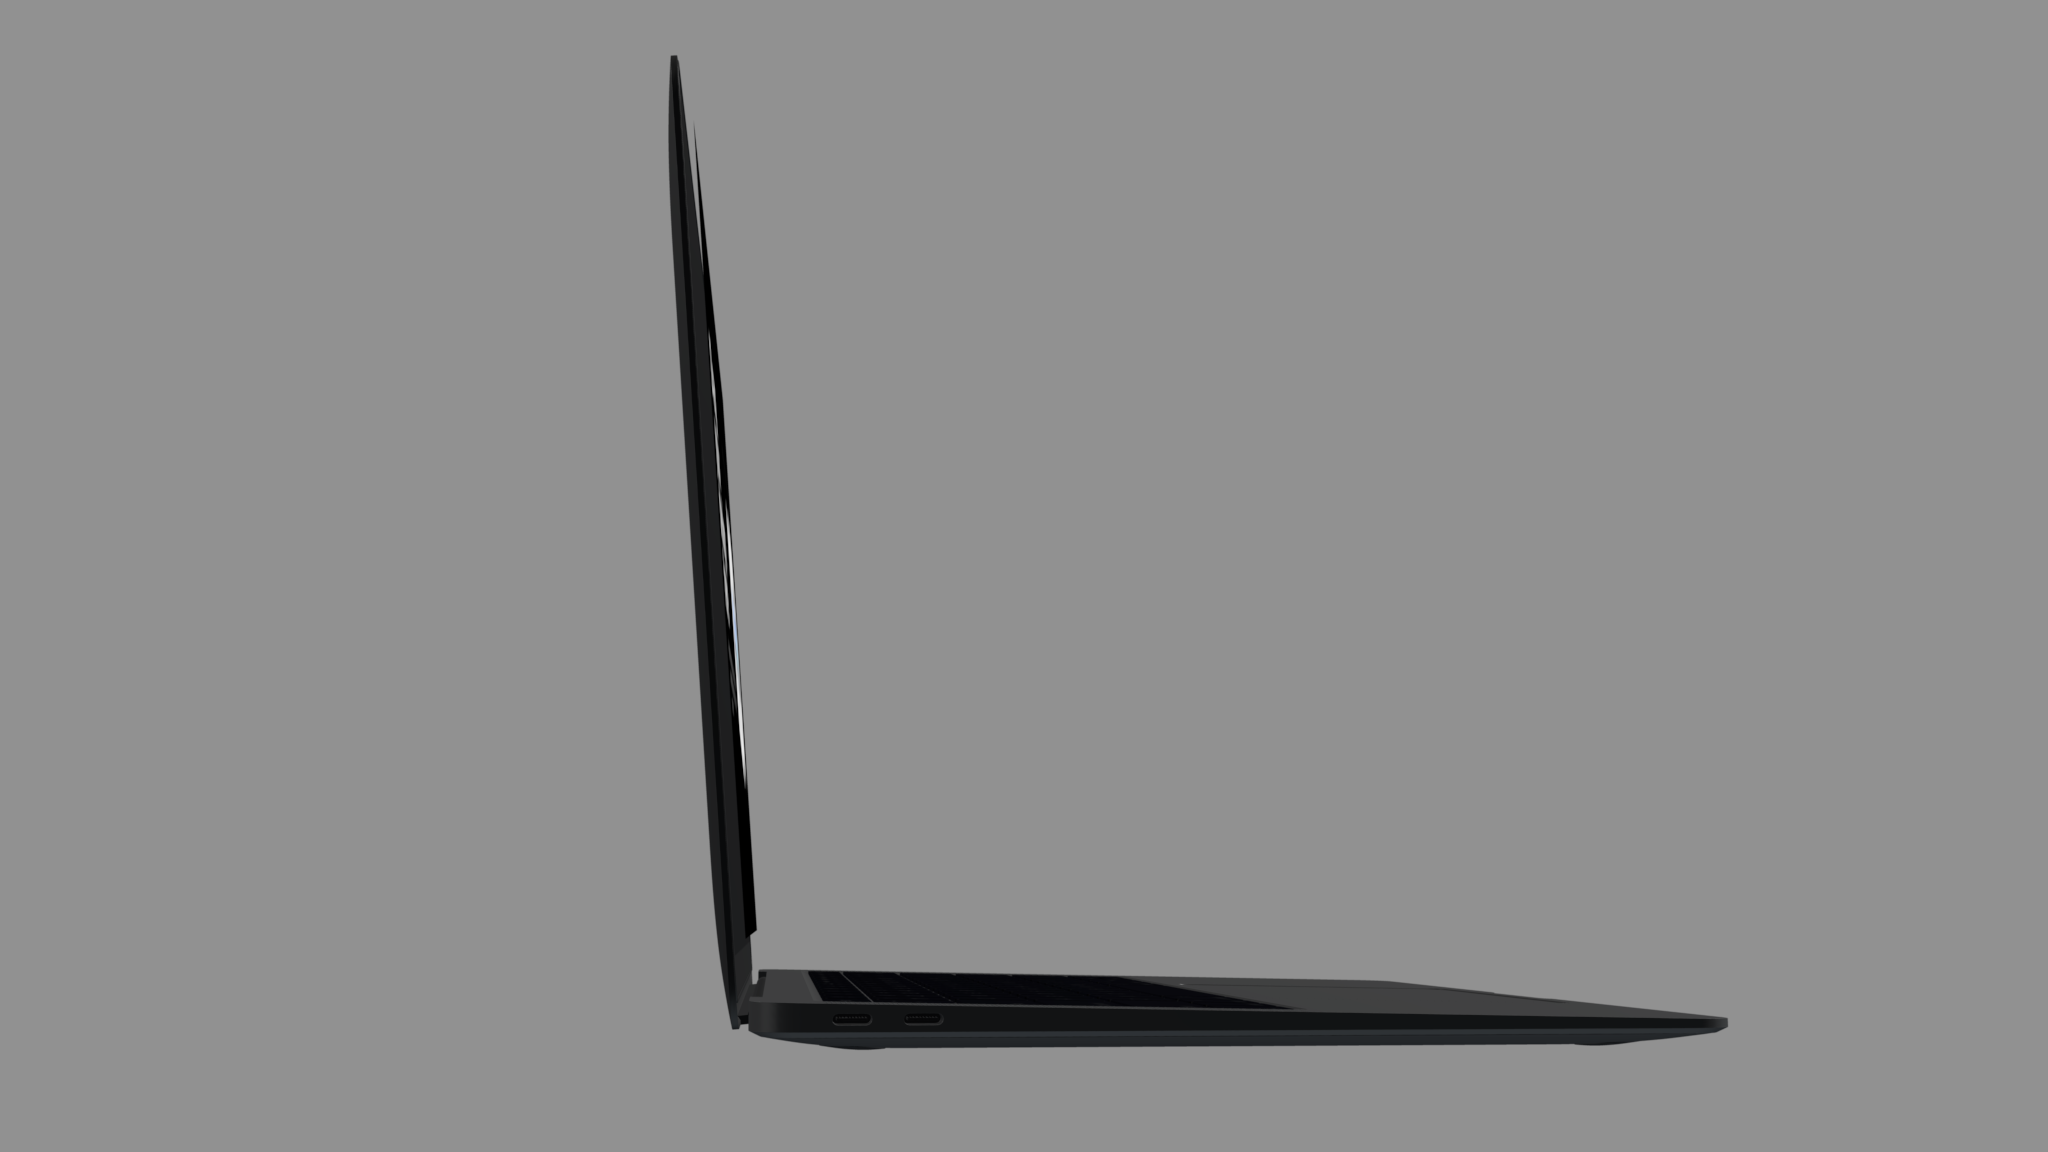 Macbook mockup from side